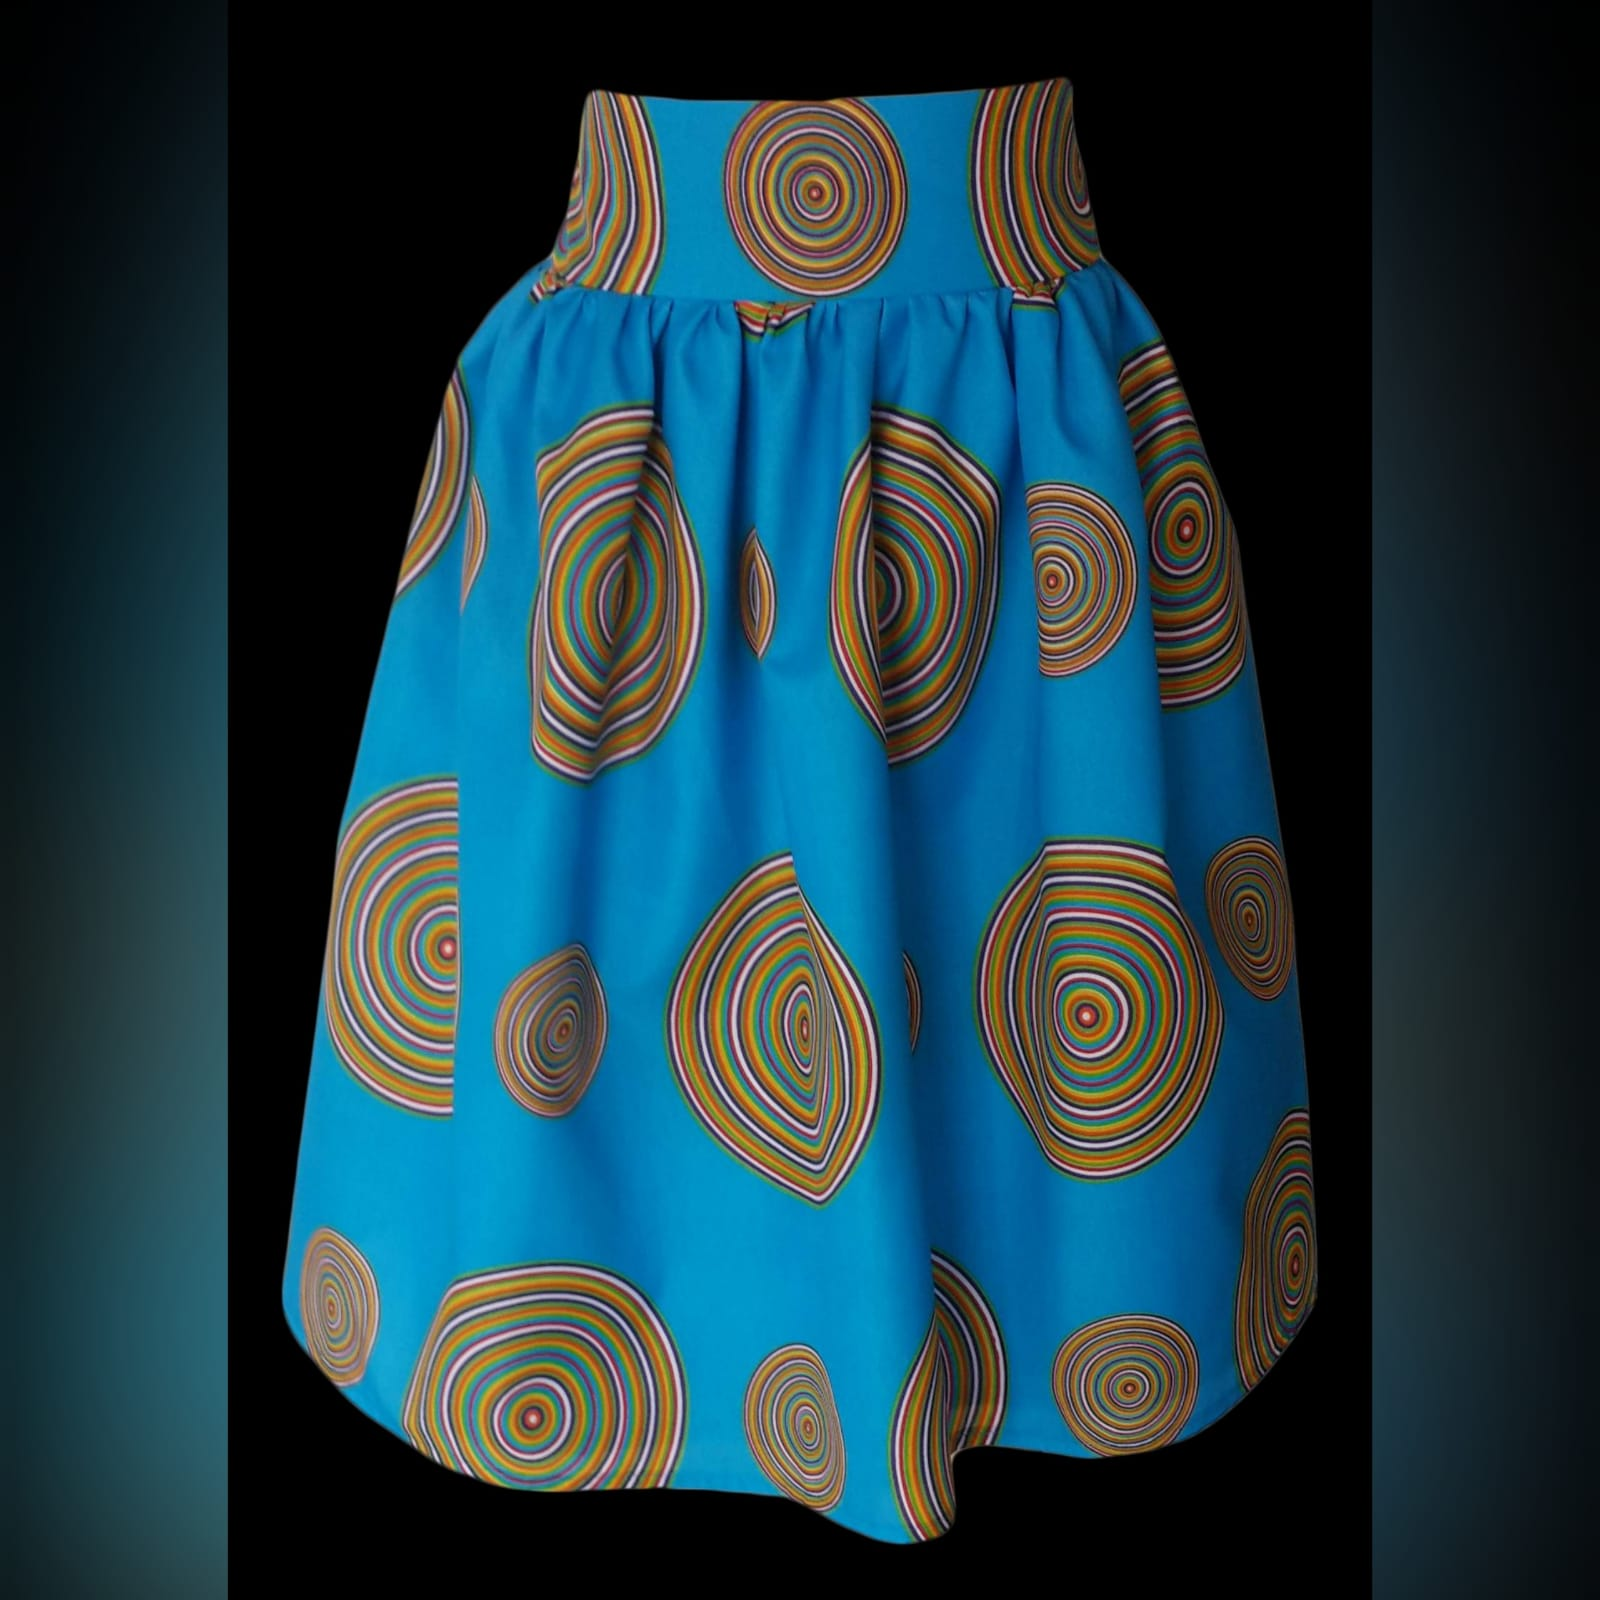 Matching venda traditional outfits for the family 5 venda traditional matching family items. Ladies high waisted skirt and girls matching skirt. With men's matching shirt.